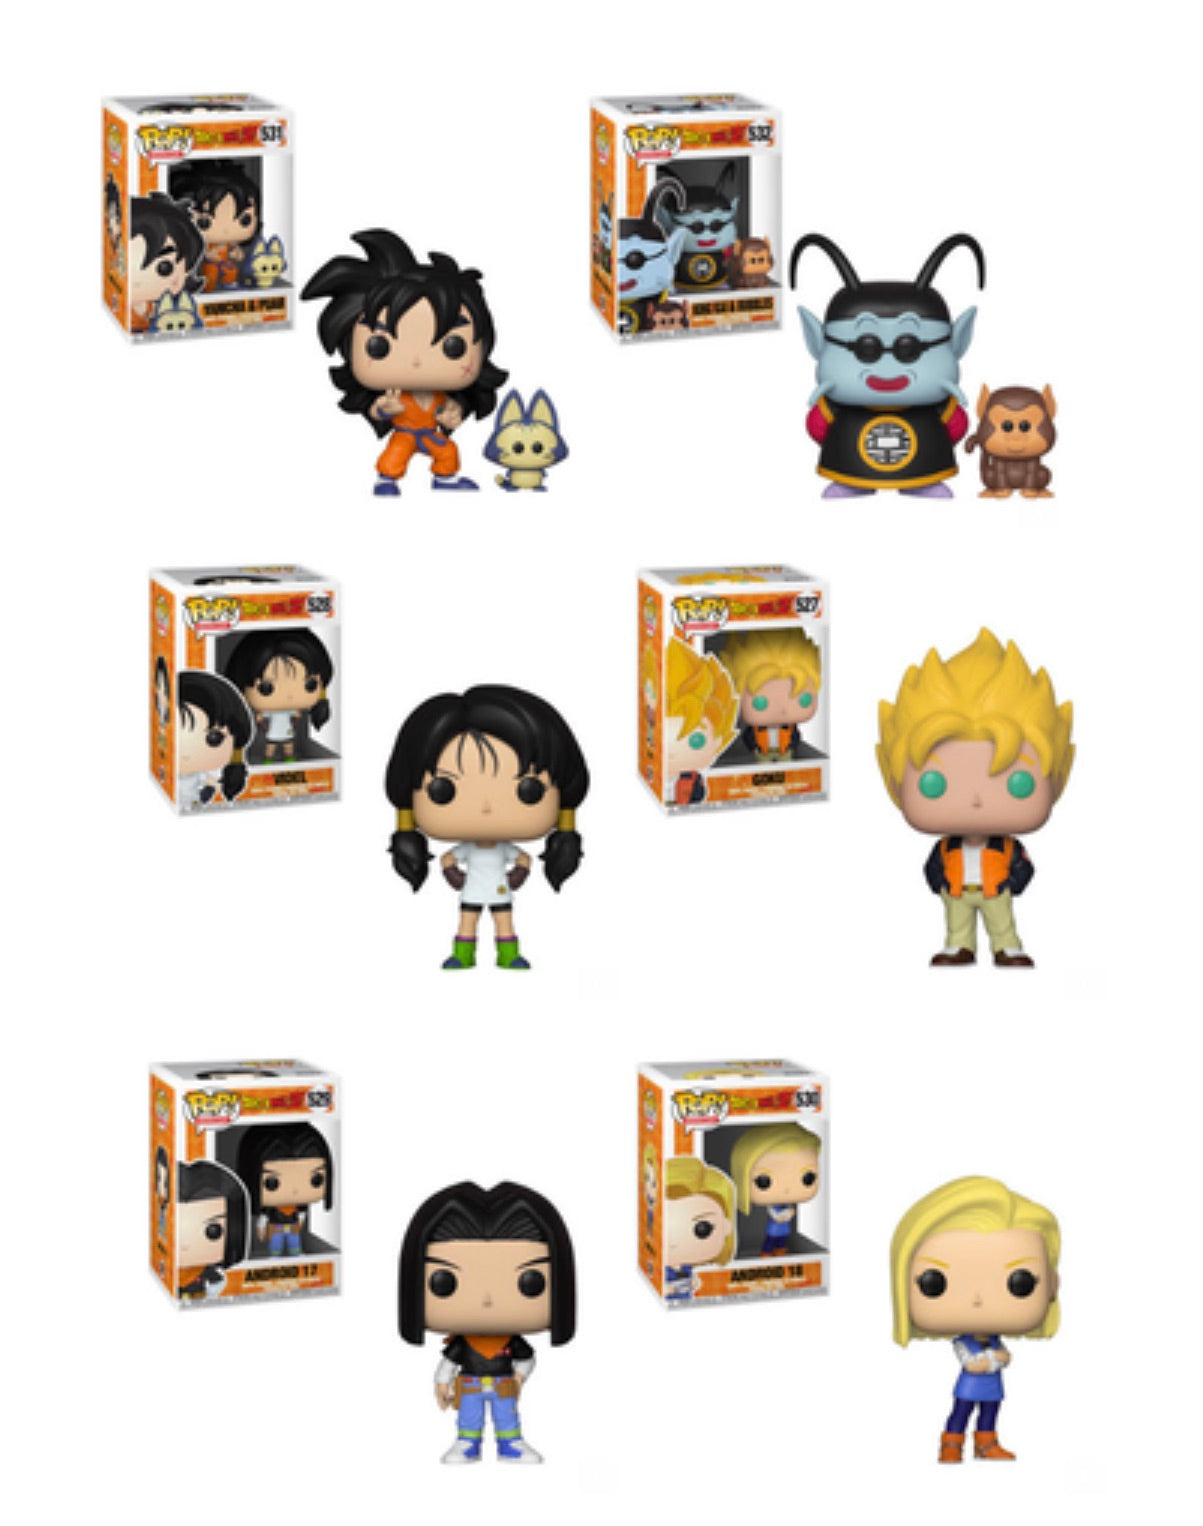 DRAGON BALL Z FUNKO POP! COMPLETE SET OF 6 (PRE-ORDER)